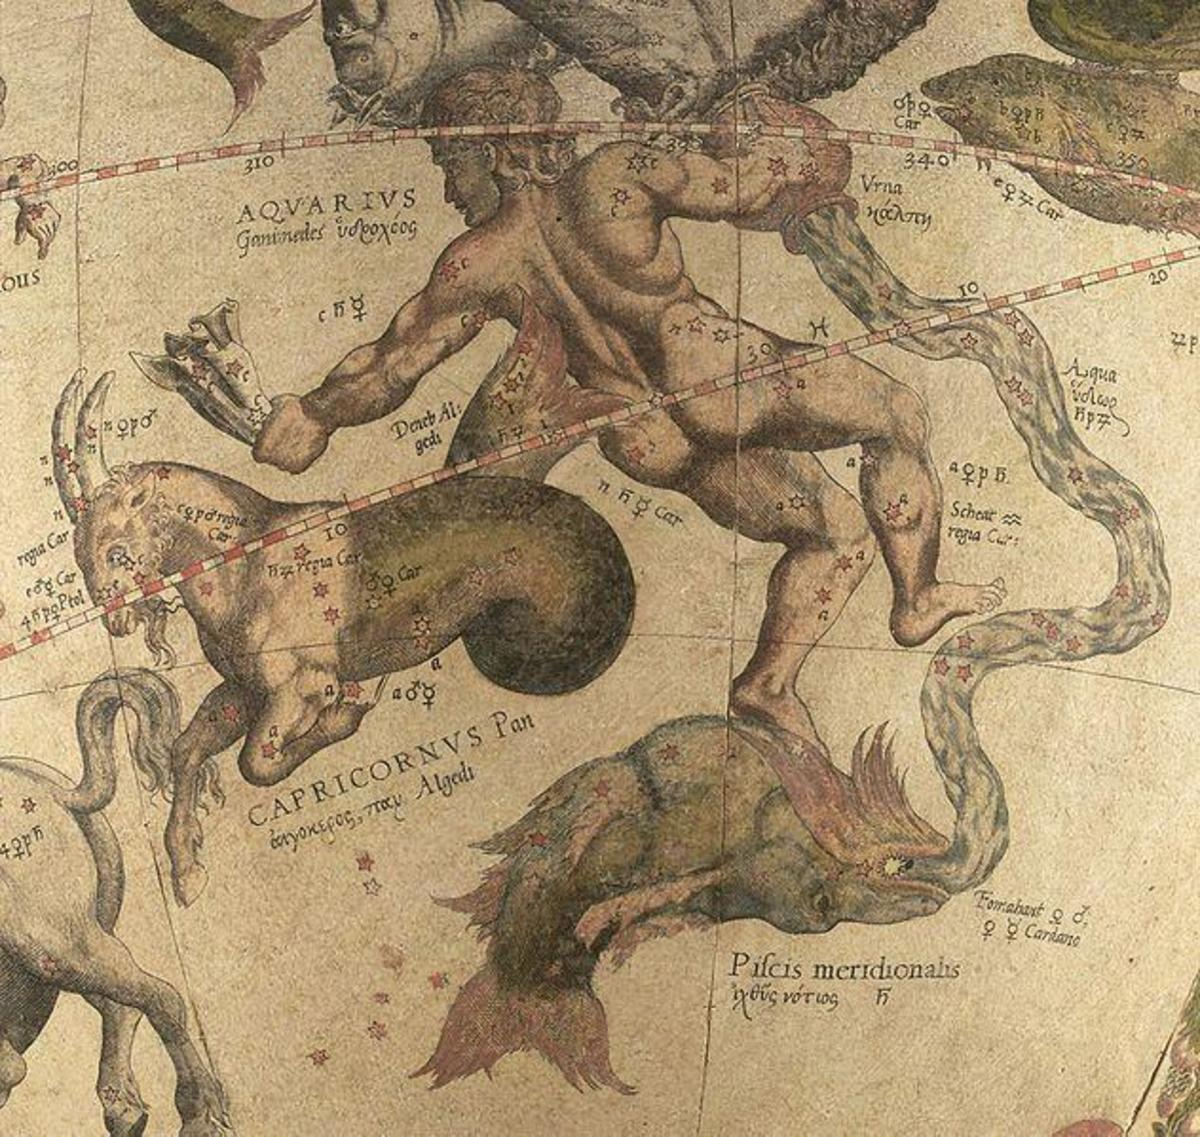 Ancient Drawing of Aquarius Constellation Over Capricornus